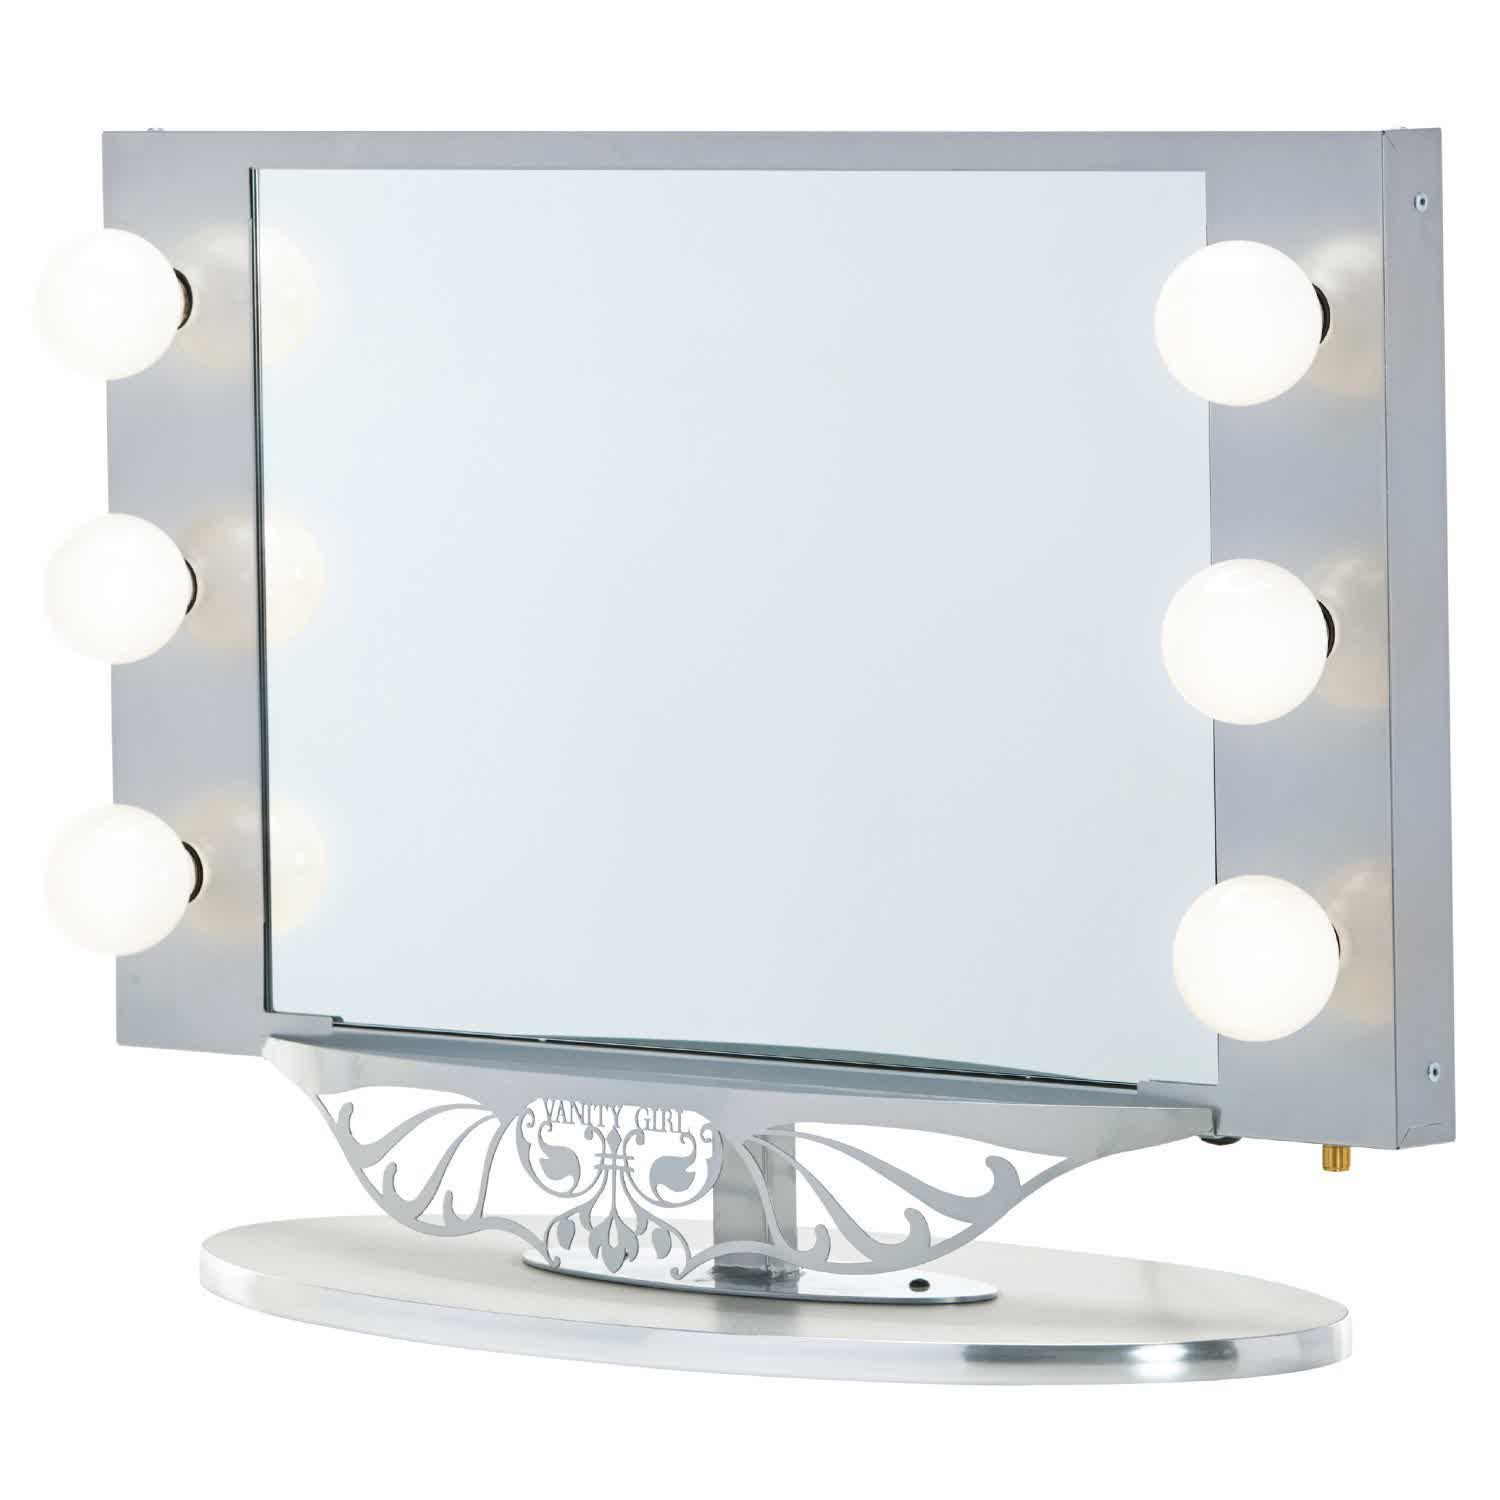 Starlet lighted vanity mirror in simple frame design for Mirror vanity